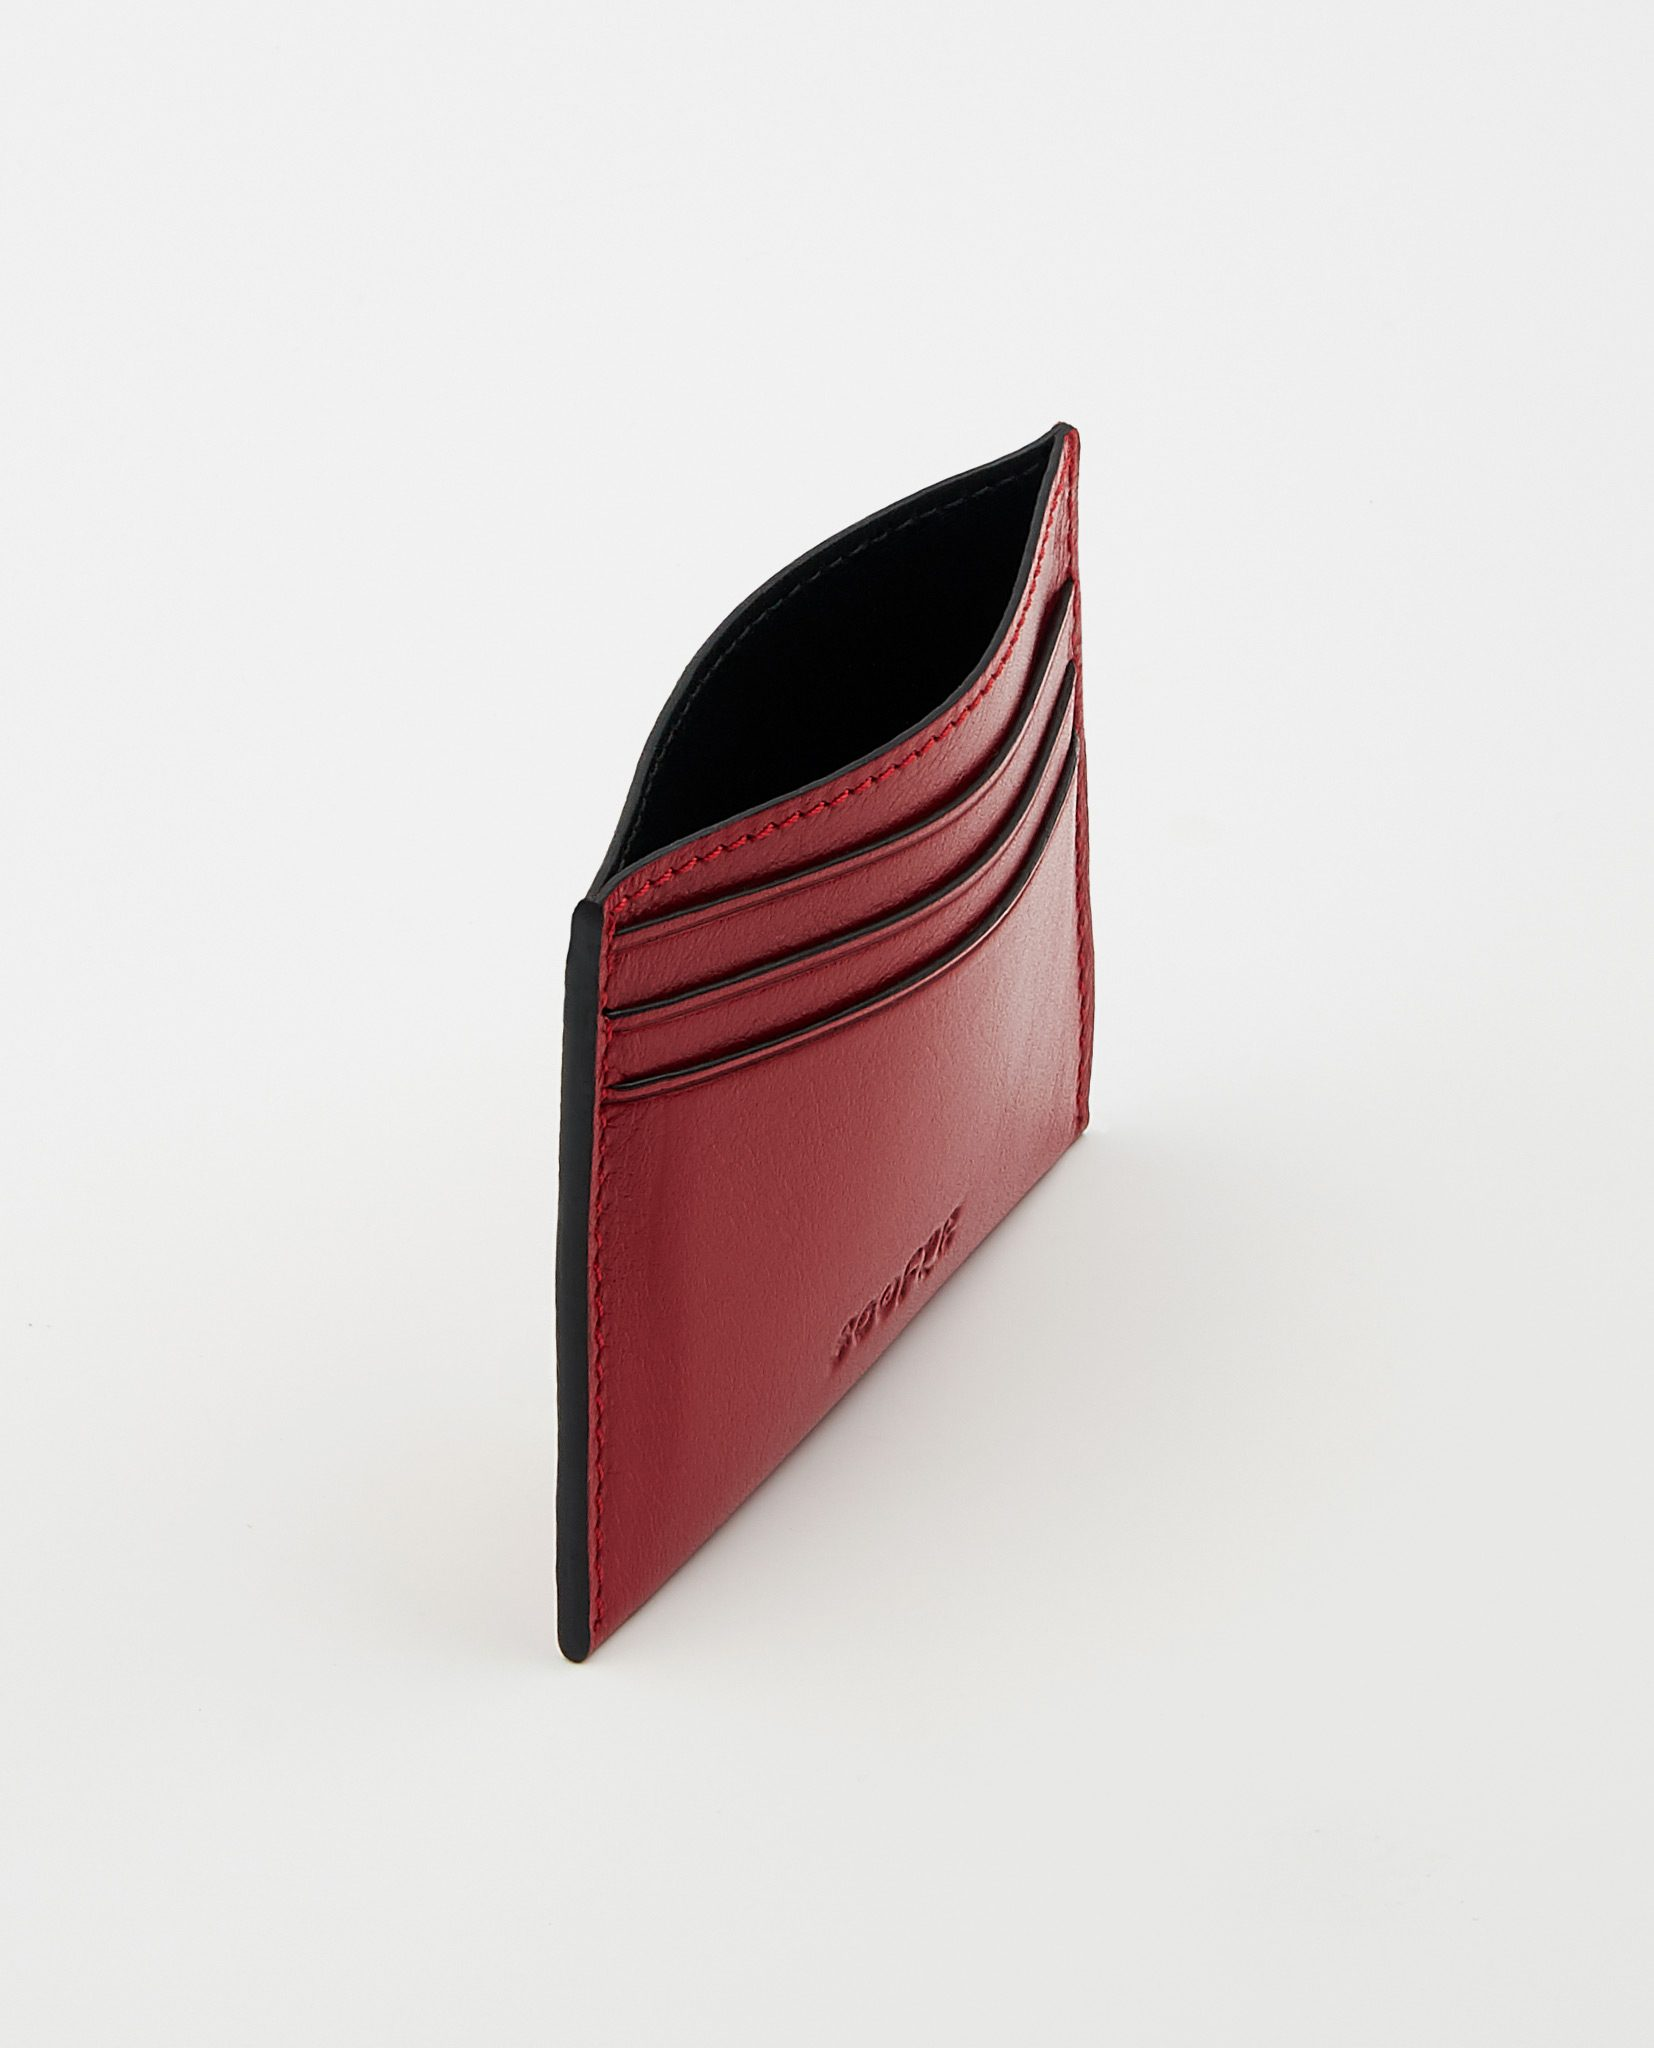 Soofre_Card-Holder_Red-Black_2